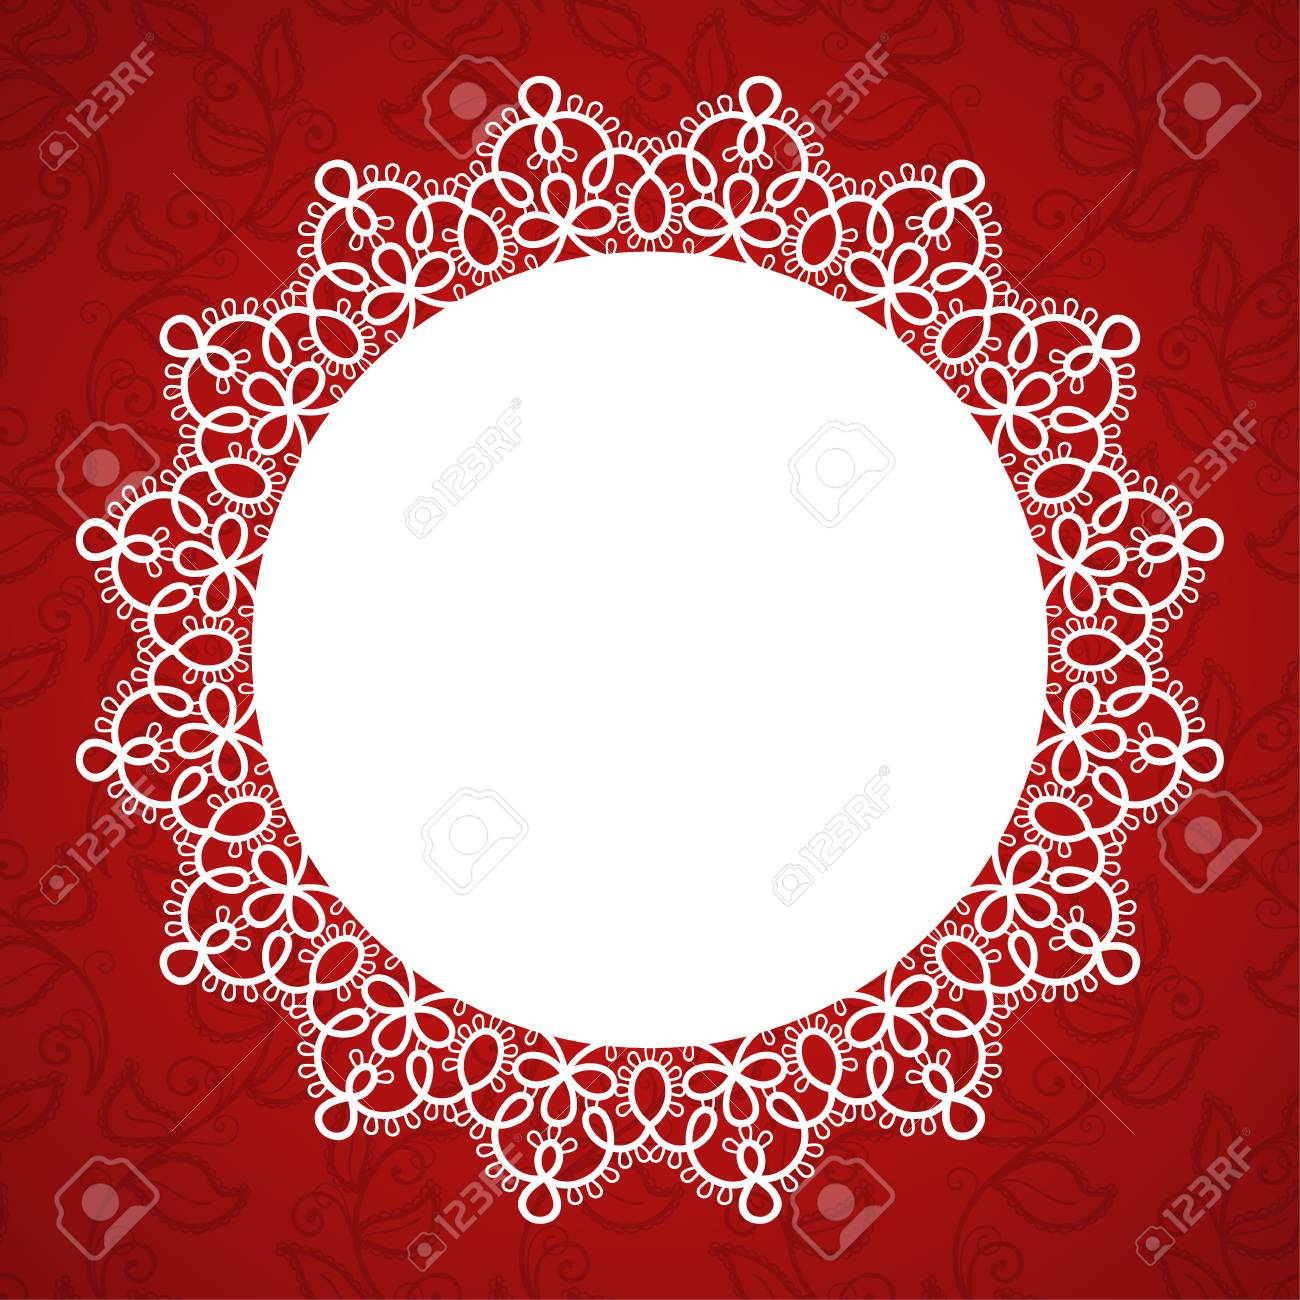 Round Lace Frame With A Place For Text Background For Wedding ...